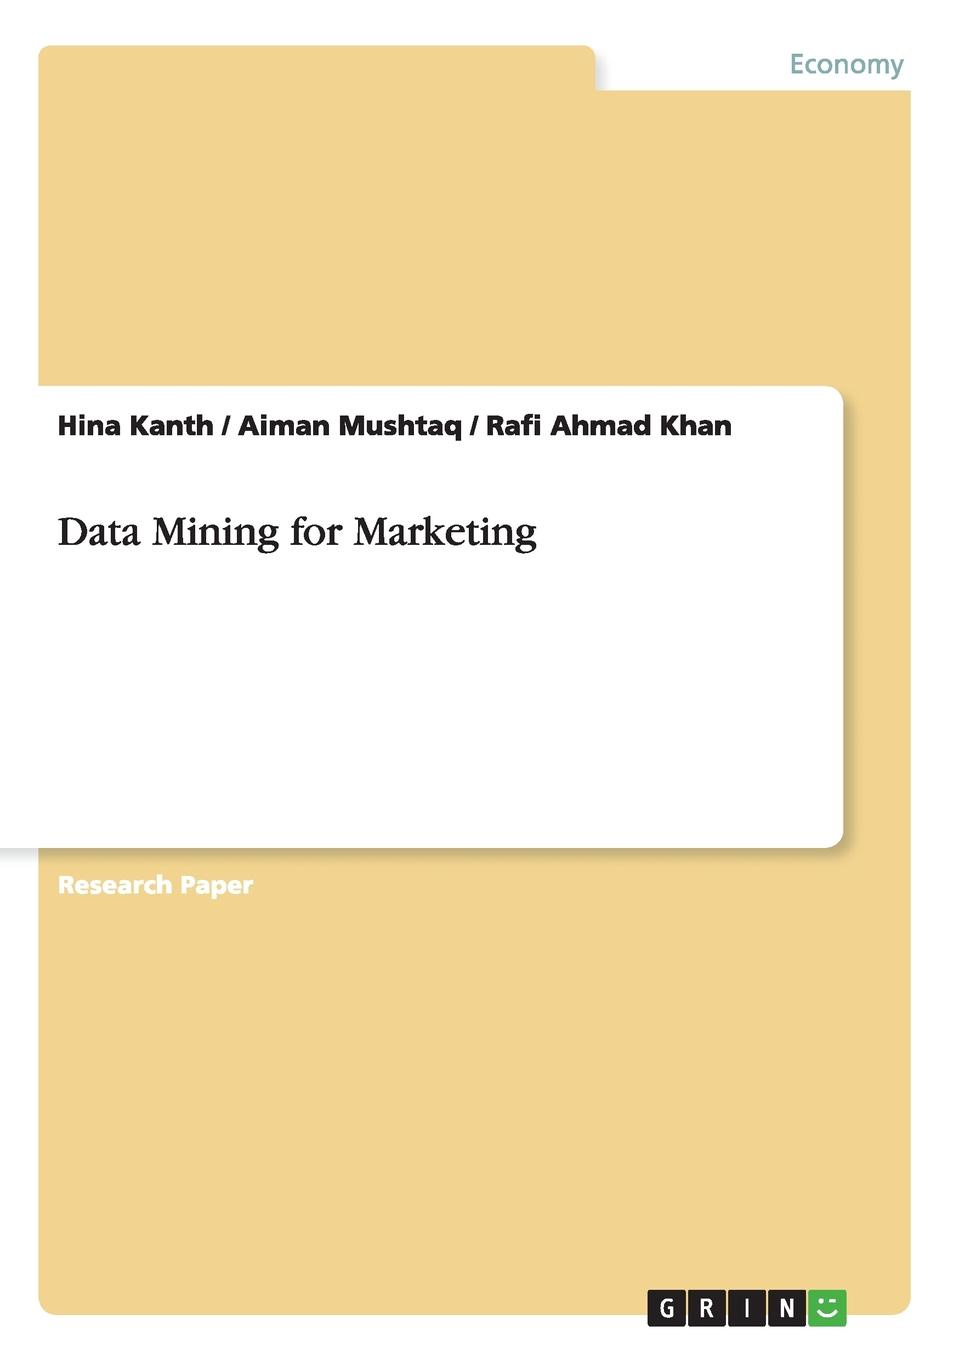 Hina Kanth, Aiman Mushtaq, Rafi Ahmad Khan Data Mining for Marketing collaboration among data sources for information retrieval